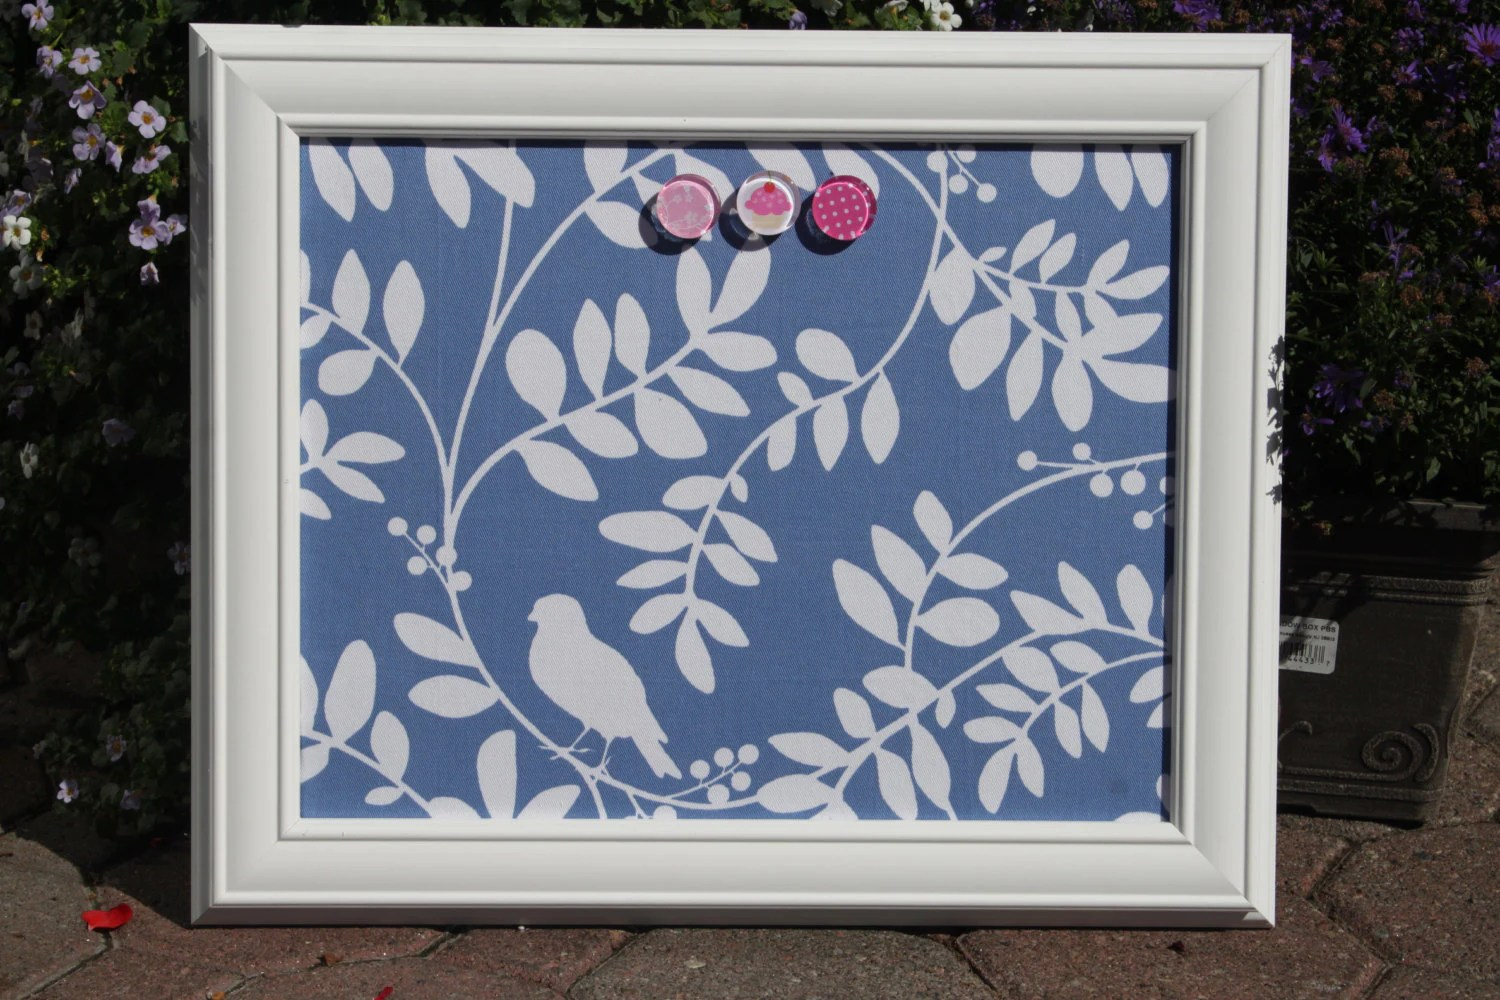 Best Decorative Memo Board Framed Magnetic By Designsbyemmapaige This Month